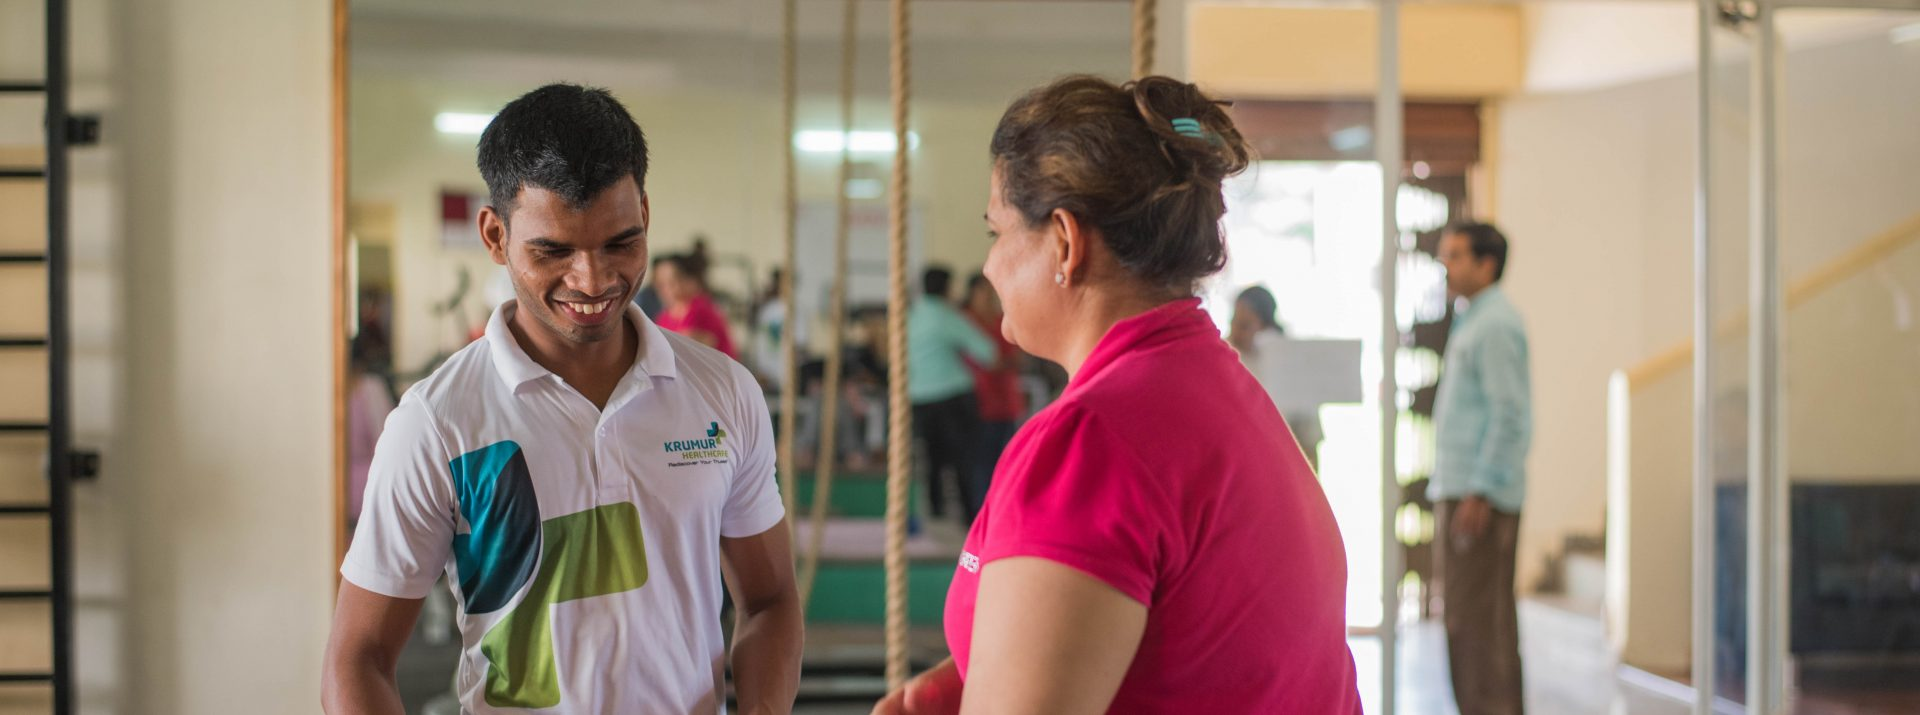 cost effective treatment programs and Physical Therapy in pune